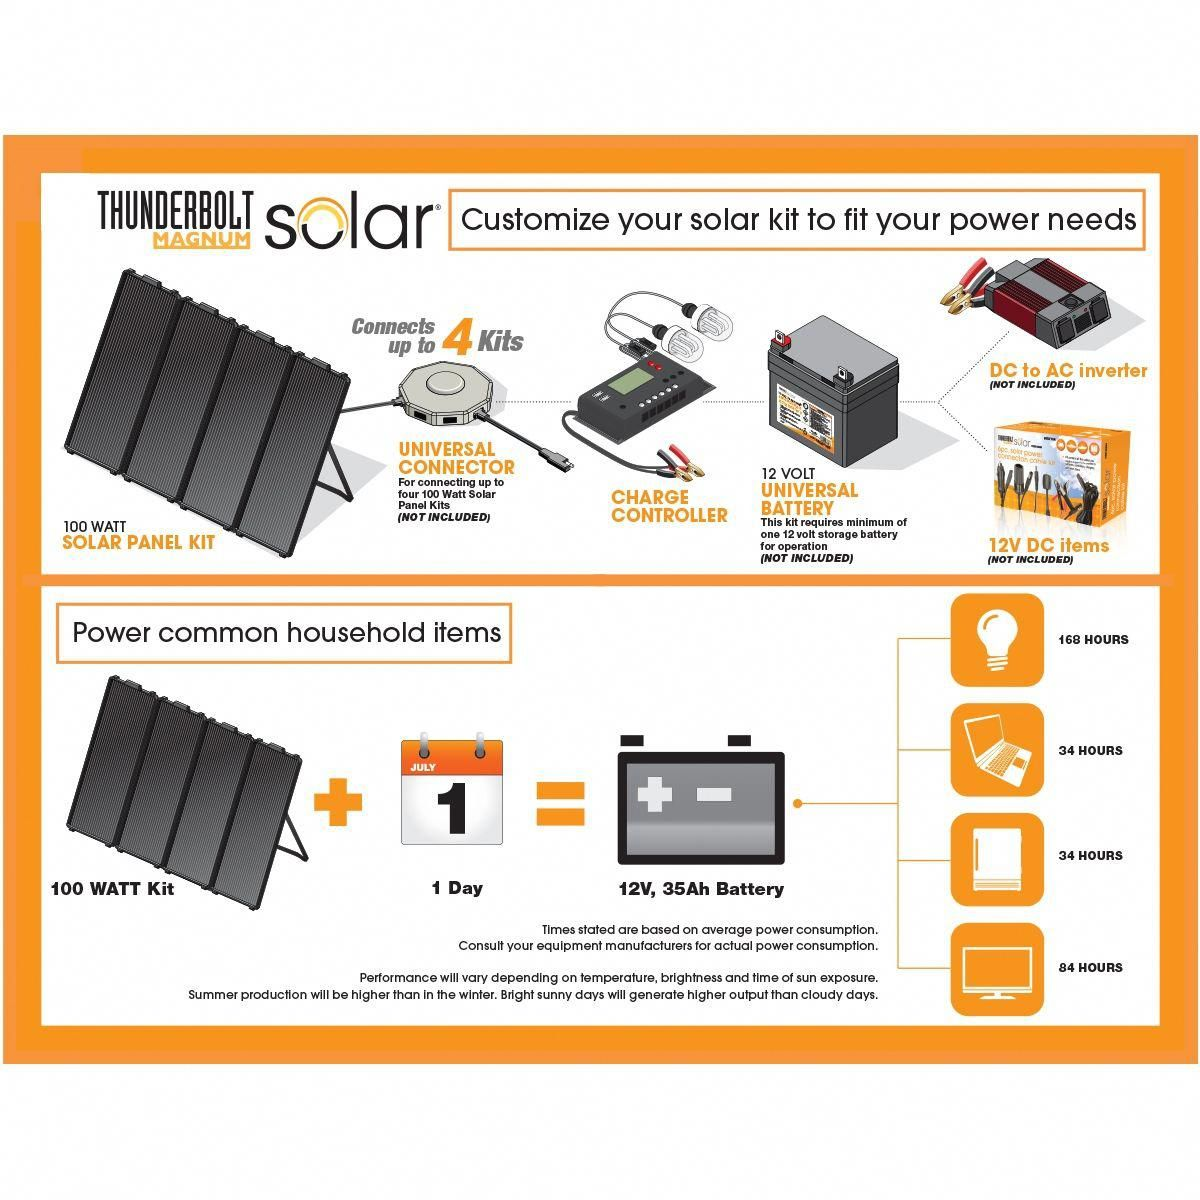 100 Watt Solar Panel Kit 100 Watt Solar Panel Solar Energy Kits Solar Panel Kits